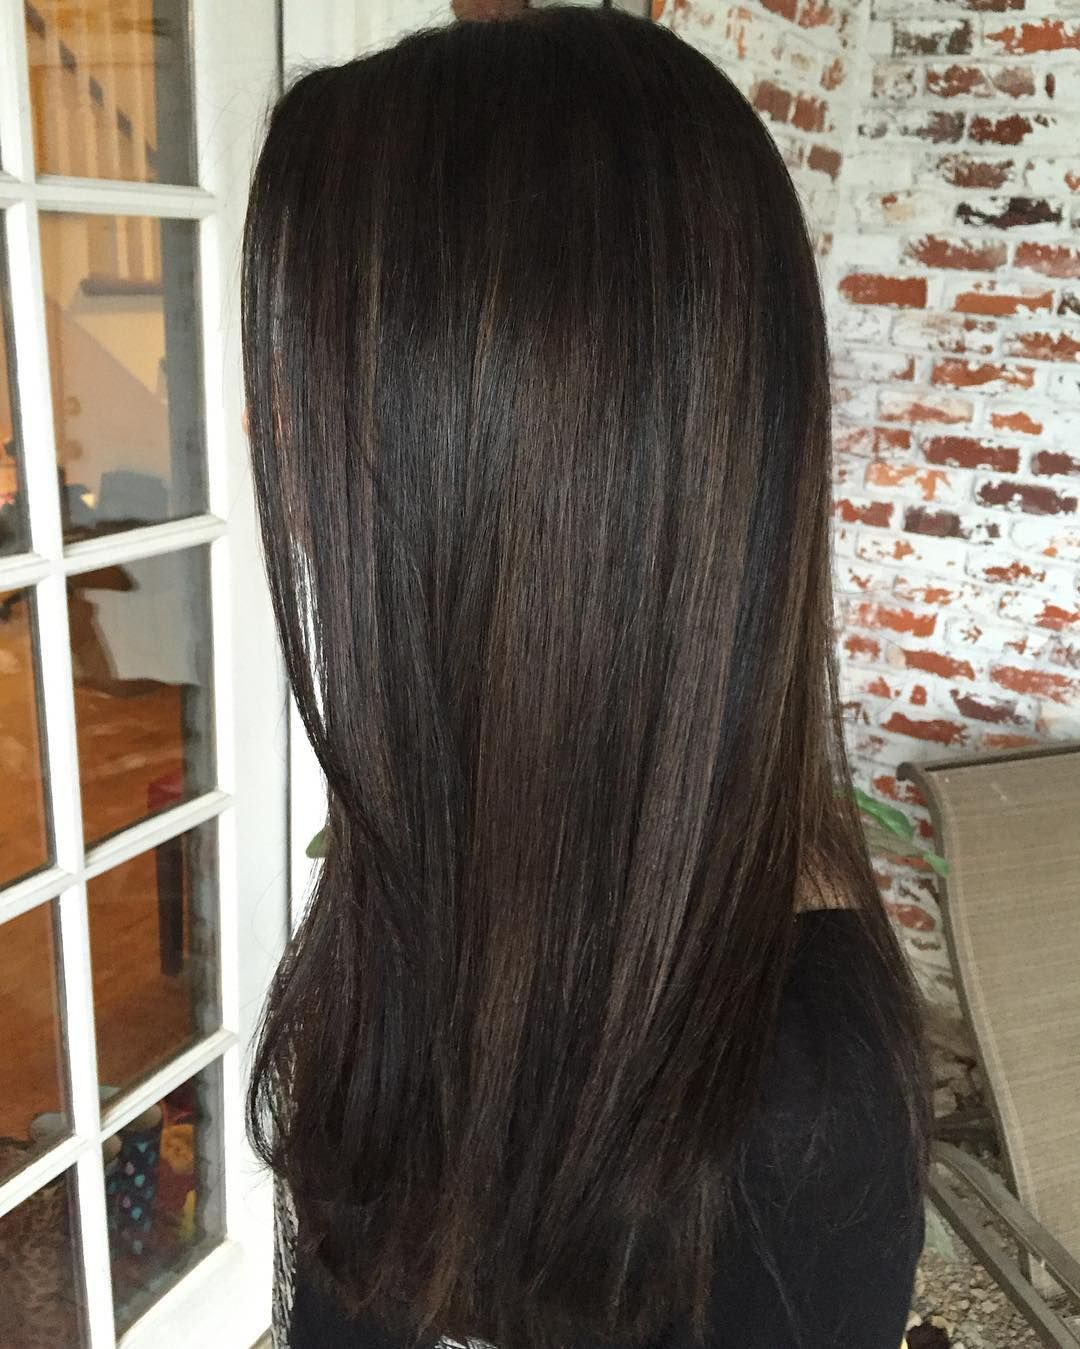 Samantha Proffer On Instagram Hair Painting Taking This New Client From Black Box Black Hair Balayage Black Hair With Highlights Hair Color For Black Hair